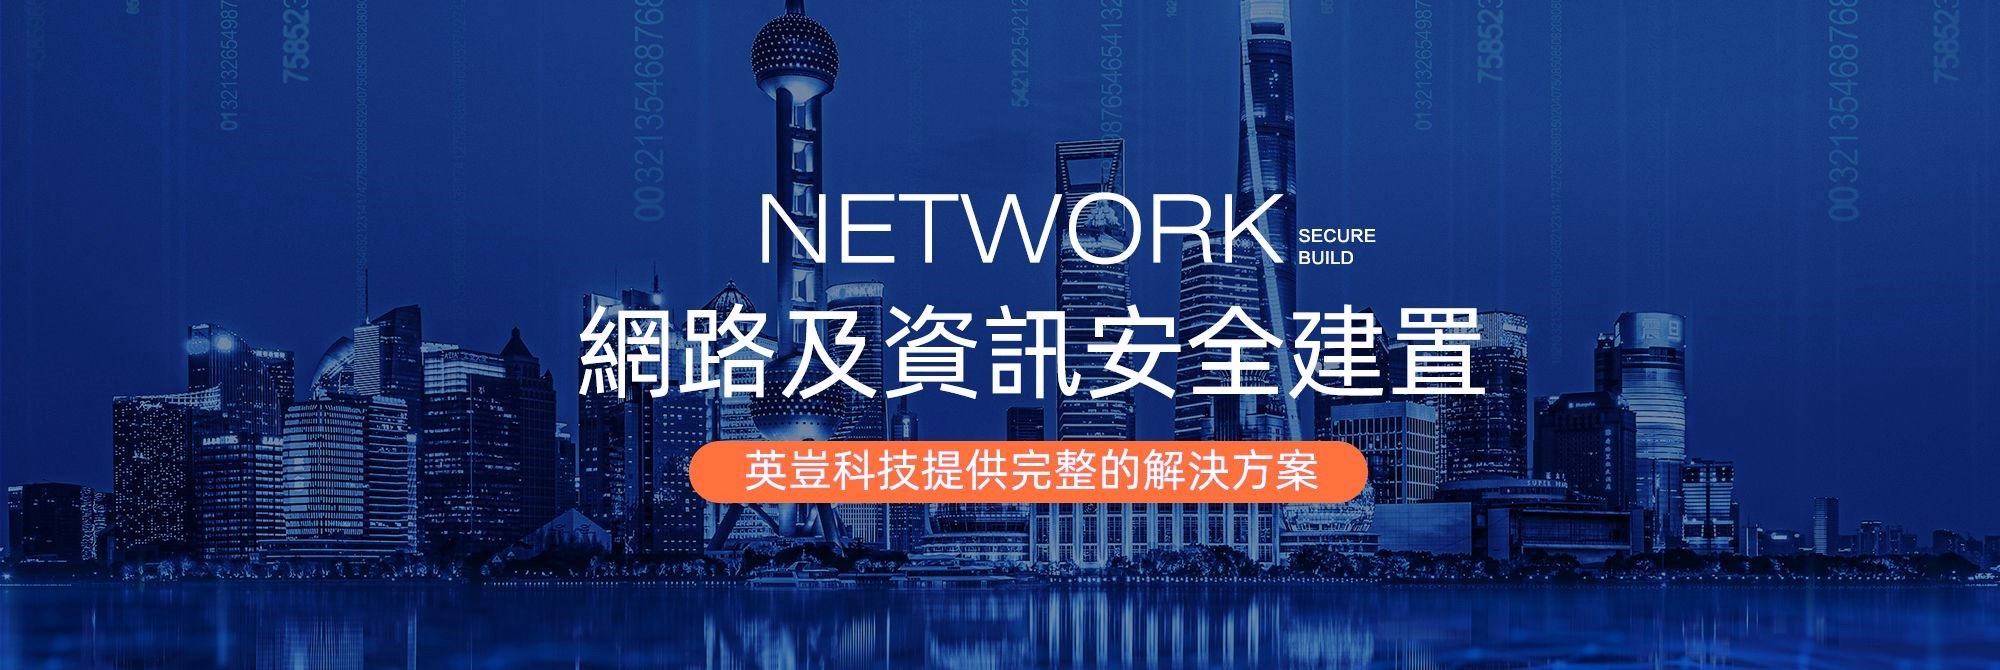 網路與資安解決方案 Network and information security solutions